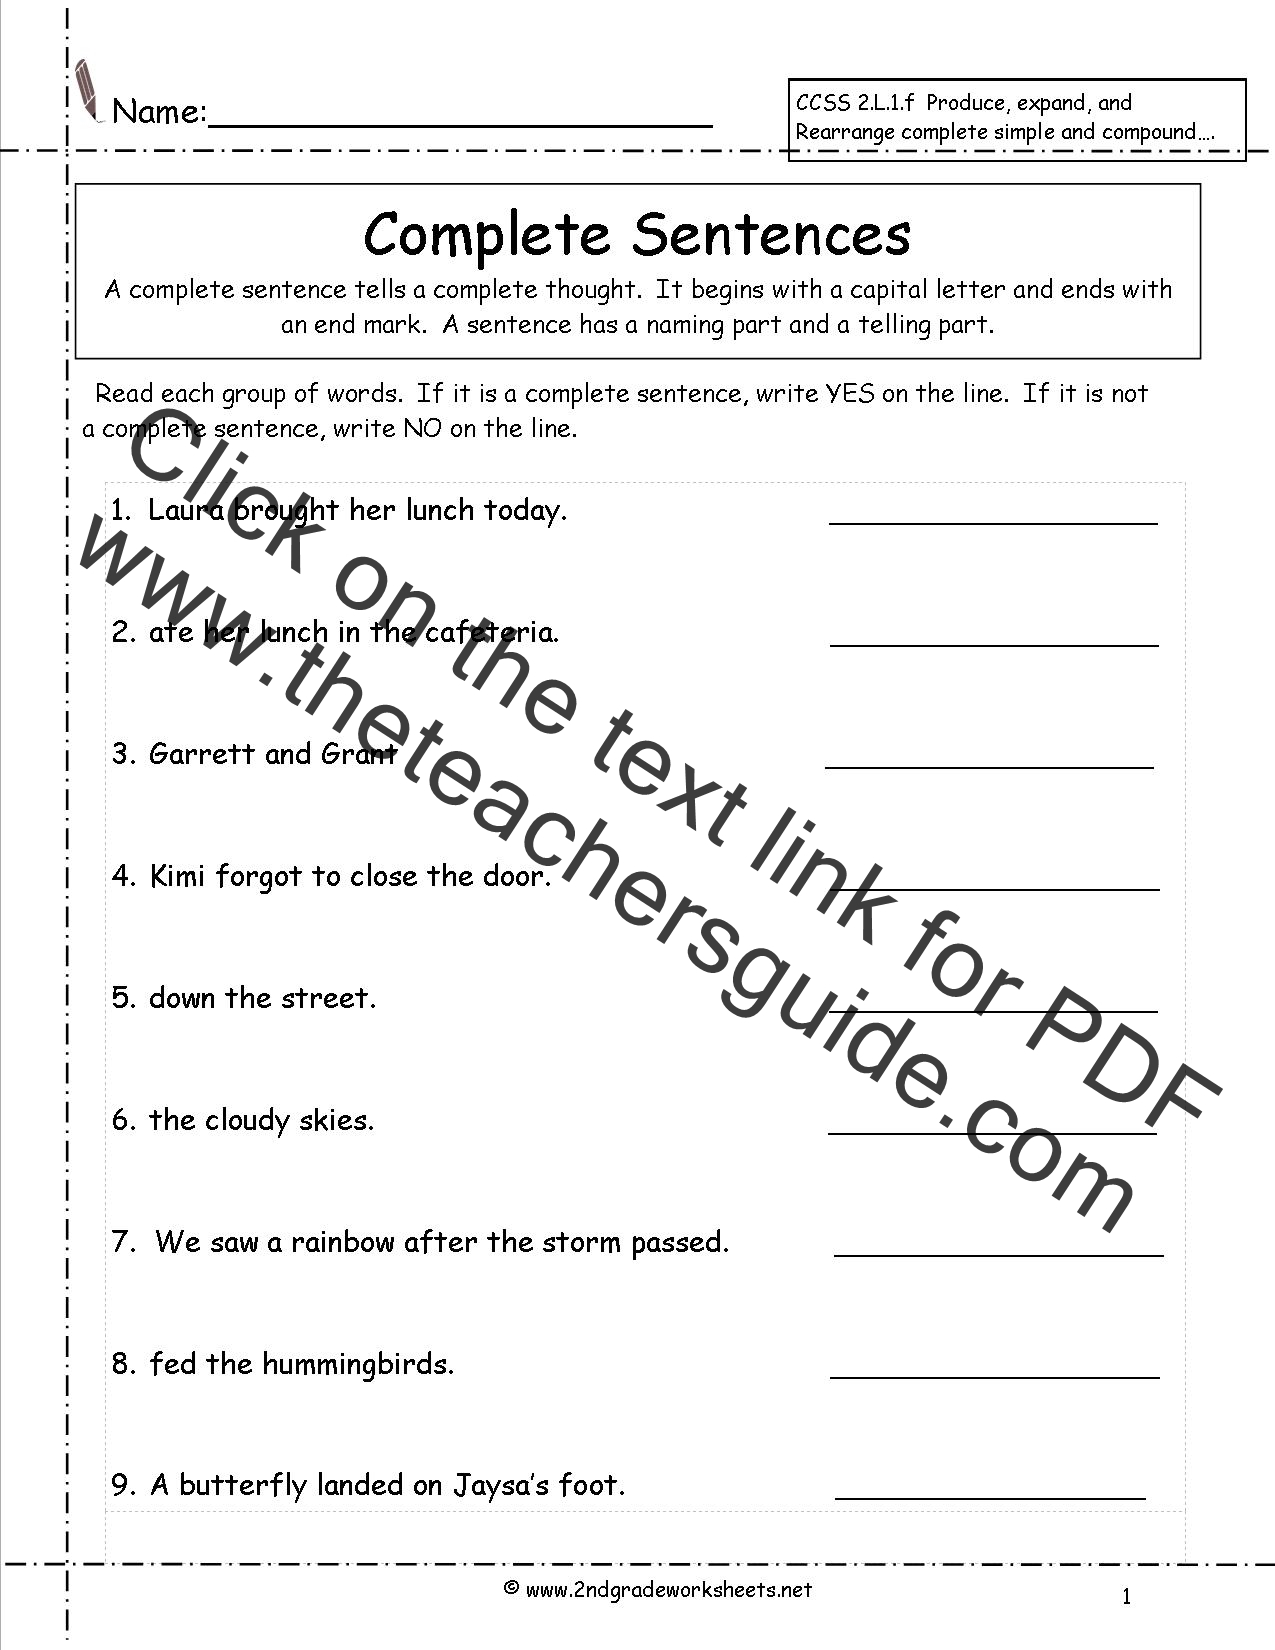 worksheet 8 F 2 Worksheet second grade sentences worksheets ccss 2 l 1 f worksheets